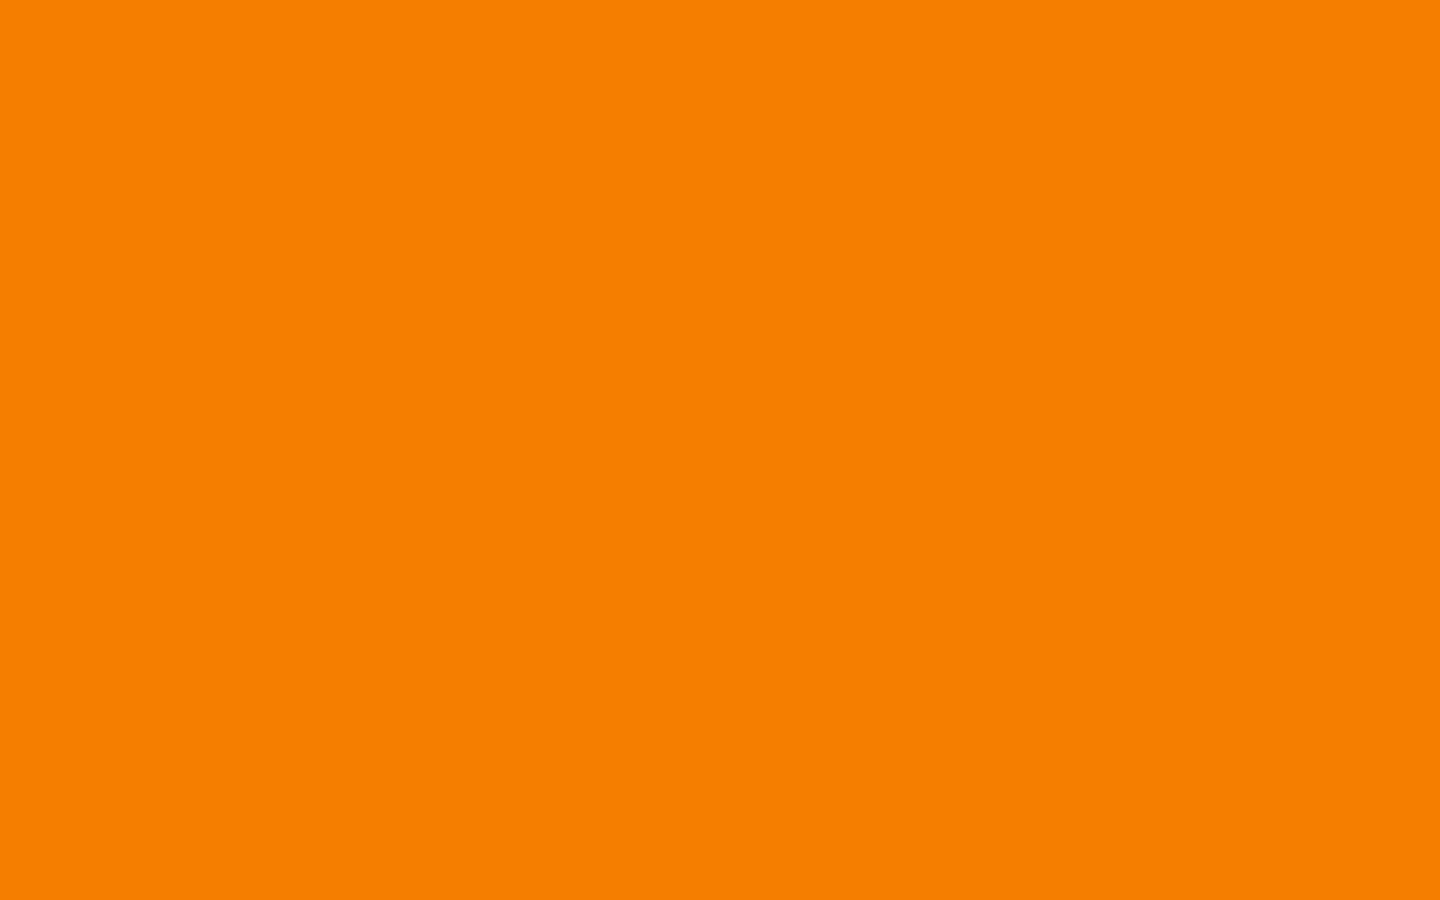 1440x900 University Of Tennessee Orange Solid Color Background